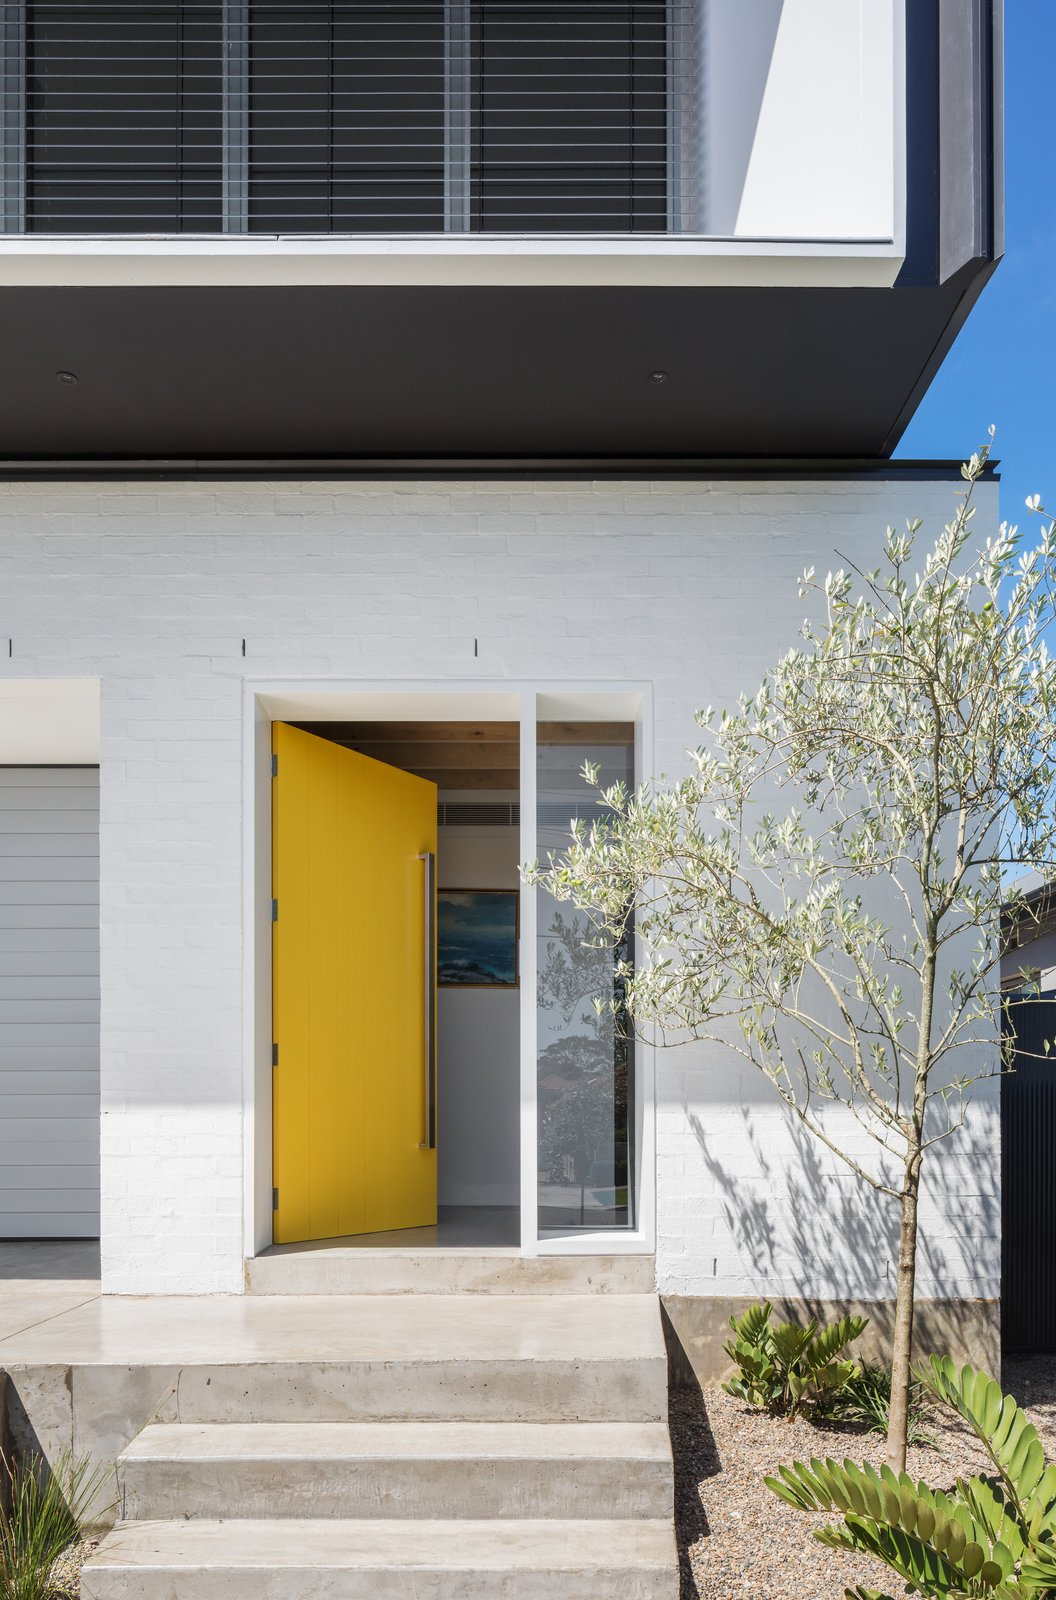 Matraville House entryway with yellow door